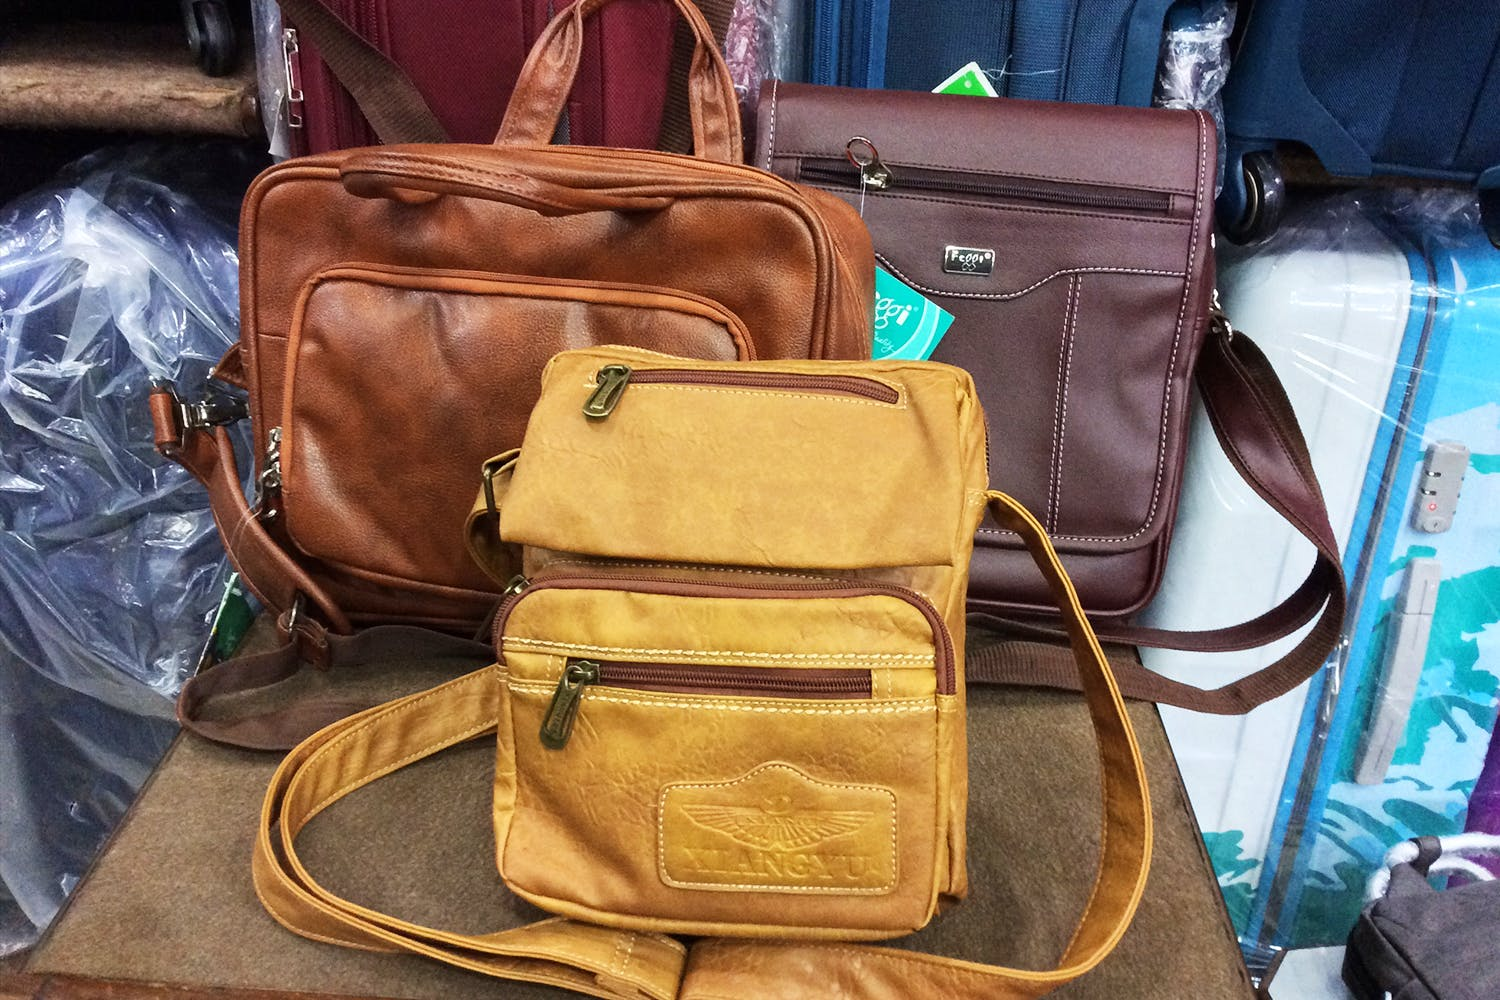 Bag,Messenger bag,Leather,Brown,Baggage,Tan,Luggage and bags,Hand luggage,Fashion accessory,Satchel